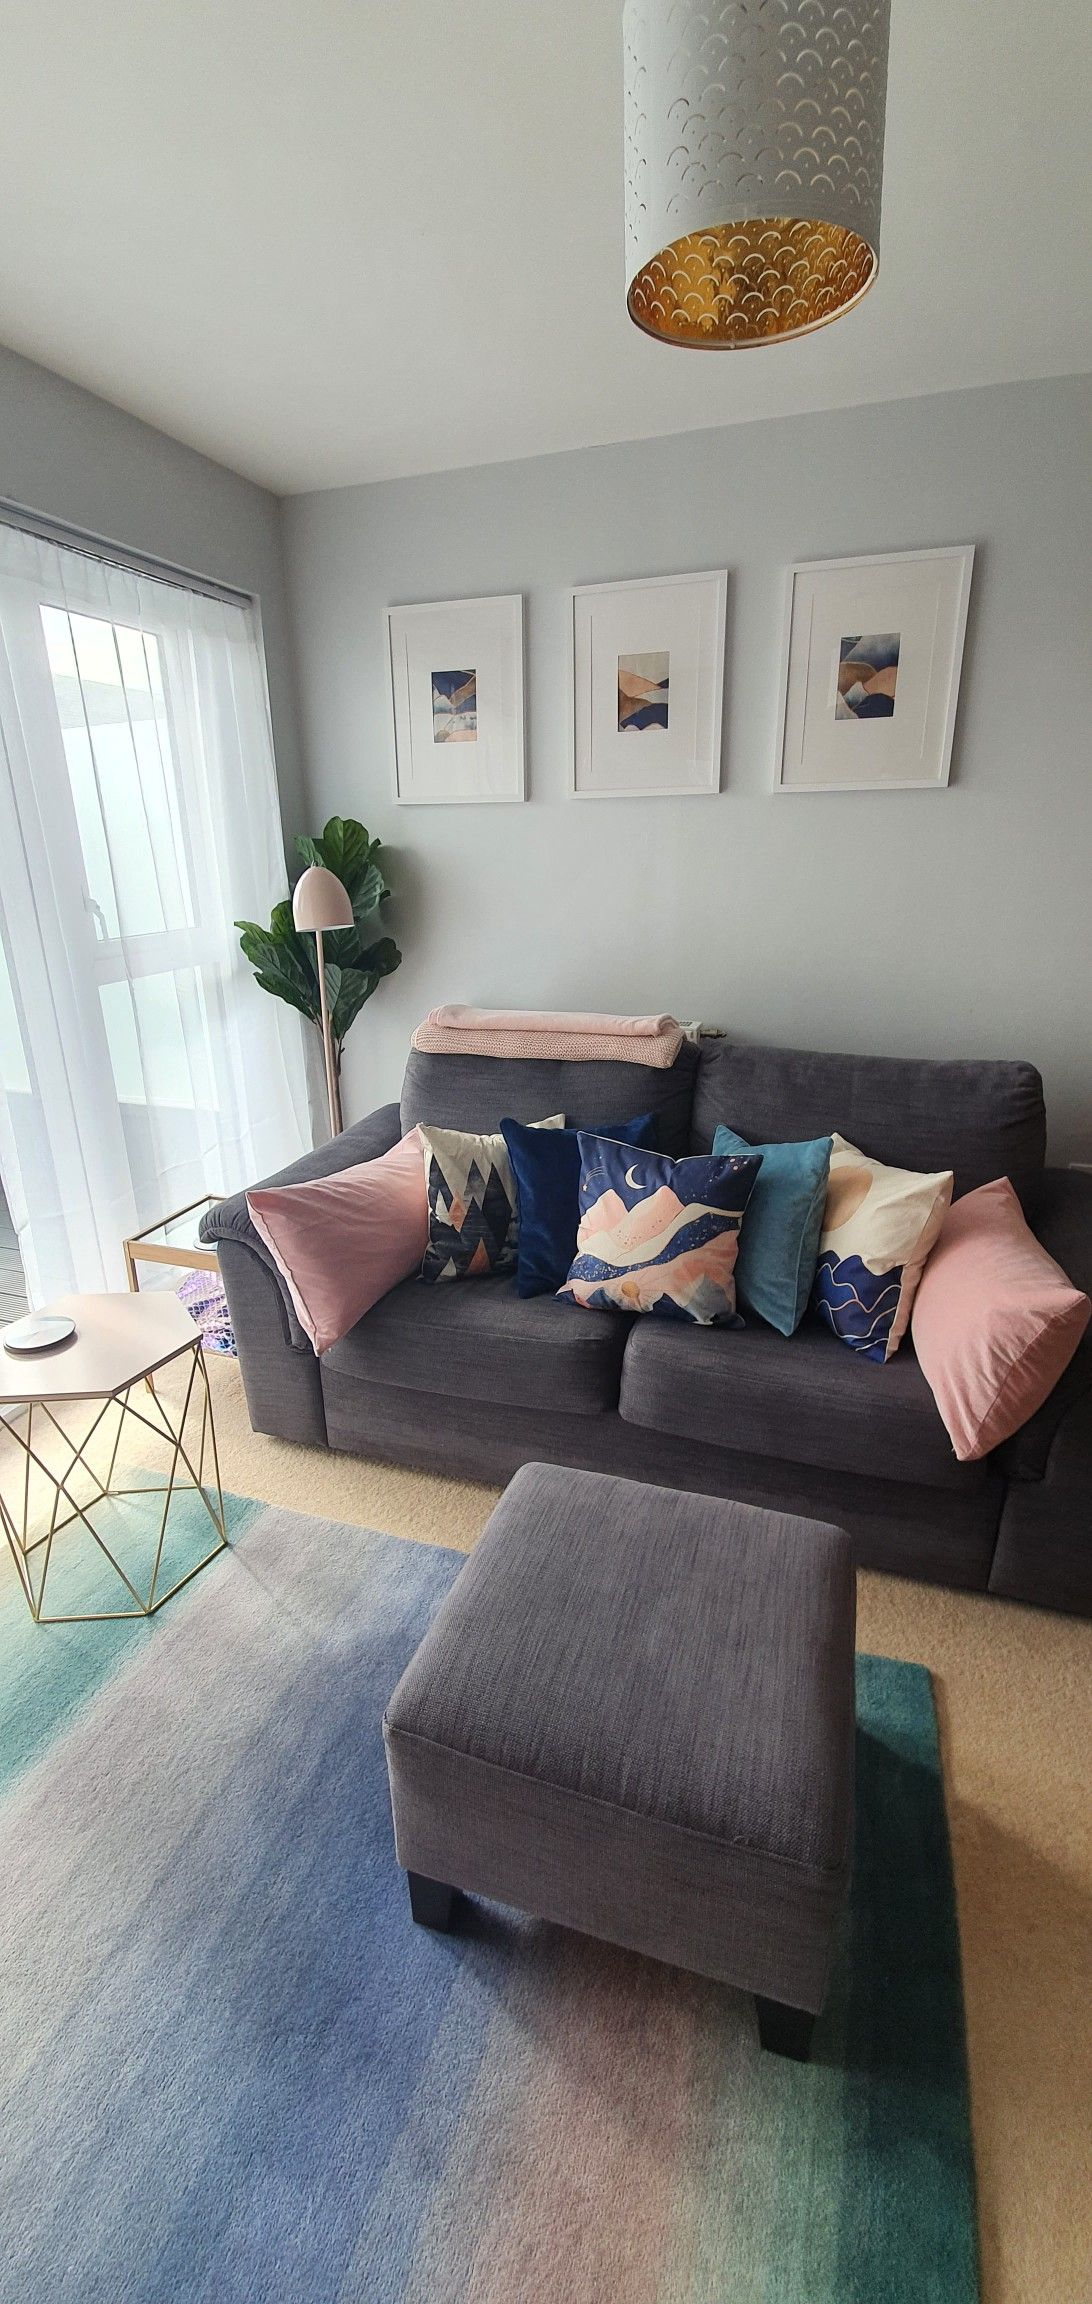 Mermaid Lounge Pink Blue Turquoise In 2020 Blue And Gold Living Room Blue Accents Living Room Gold Living Room #turquoise #and #gold #living #room